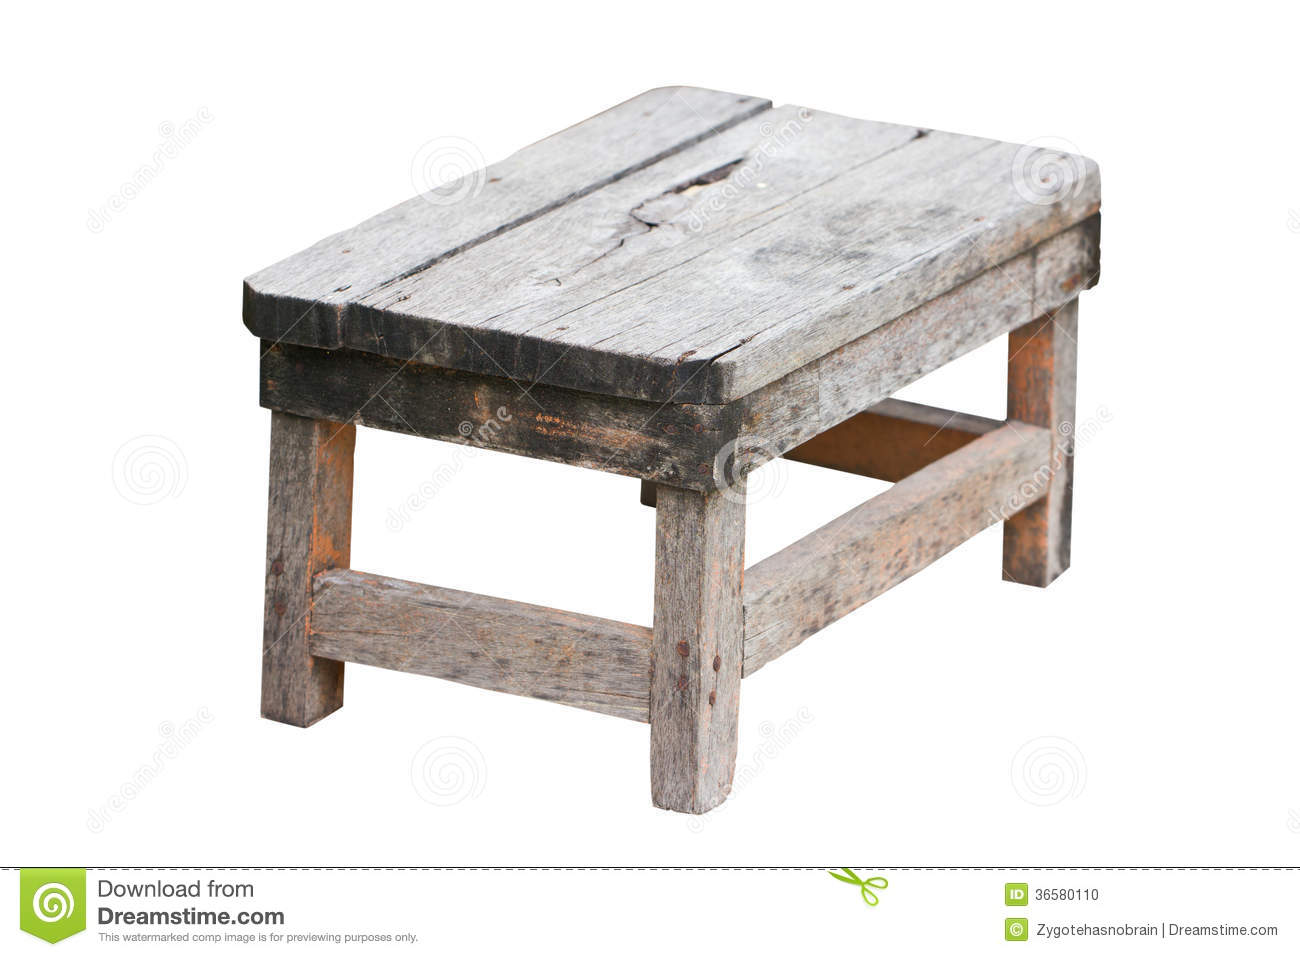 Wonderful image of Old Wooden Stool. Stock Photo Image: 36580110 with #85A625 color and 1300x957 pixels